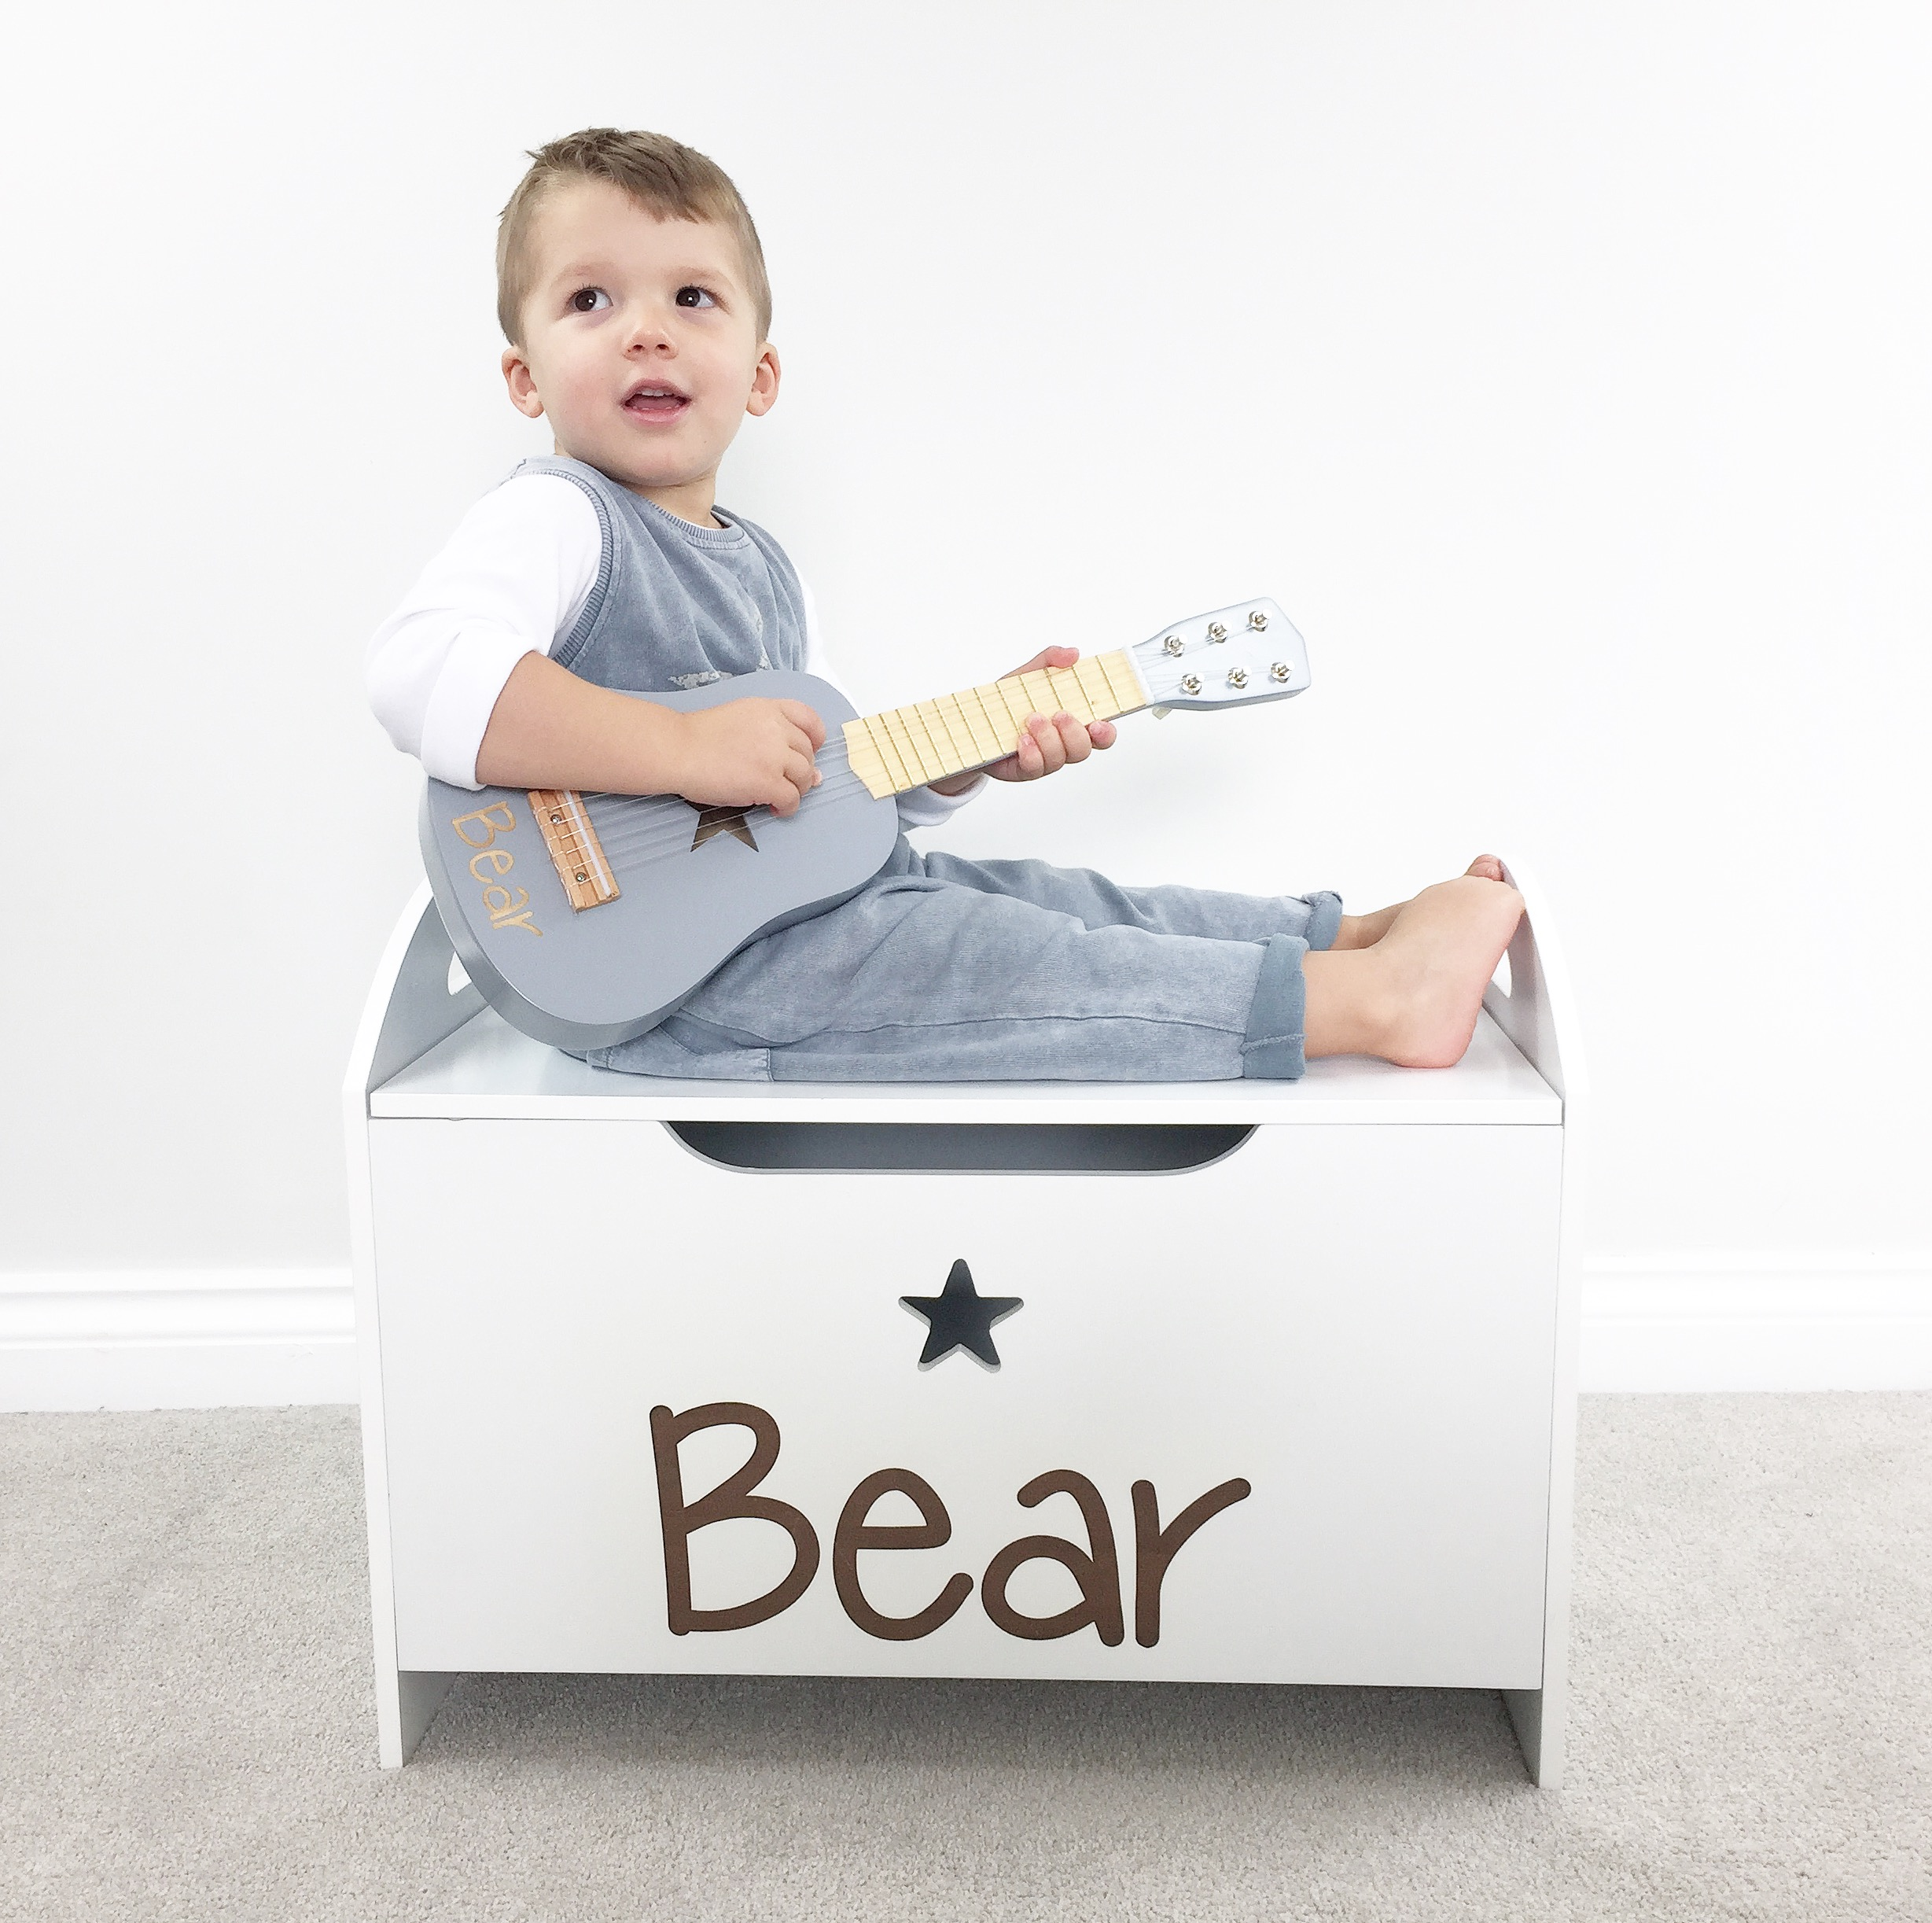 Baby Bedroom In A Box Special: Personalised White Star Toy Box